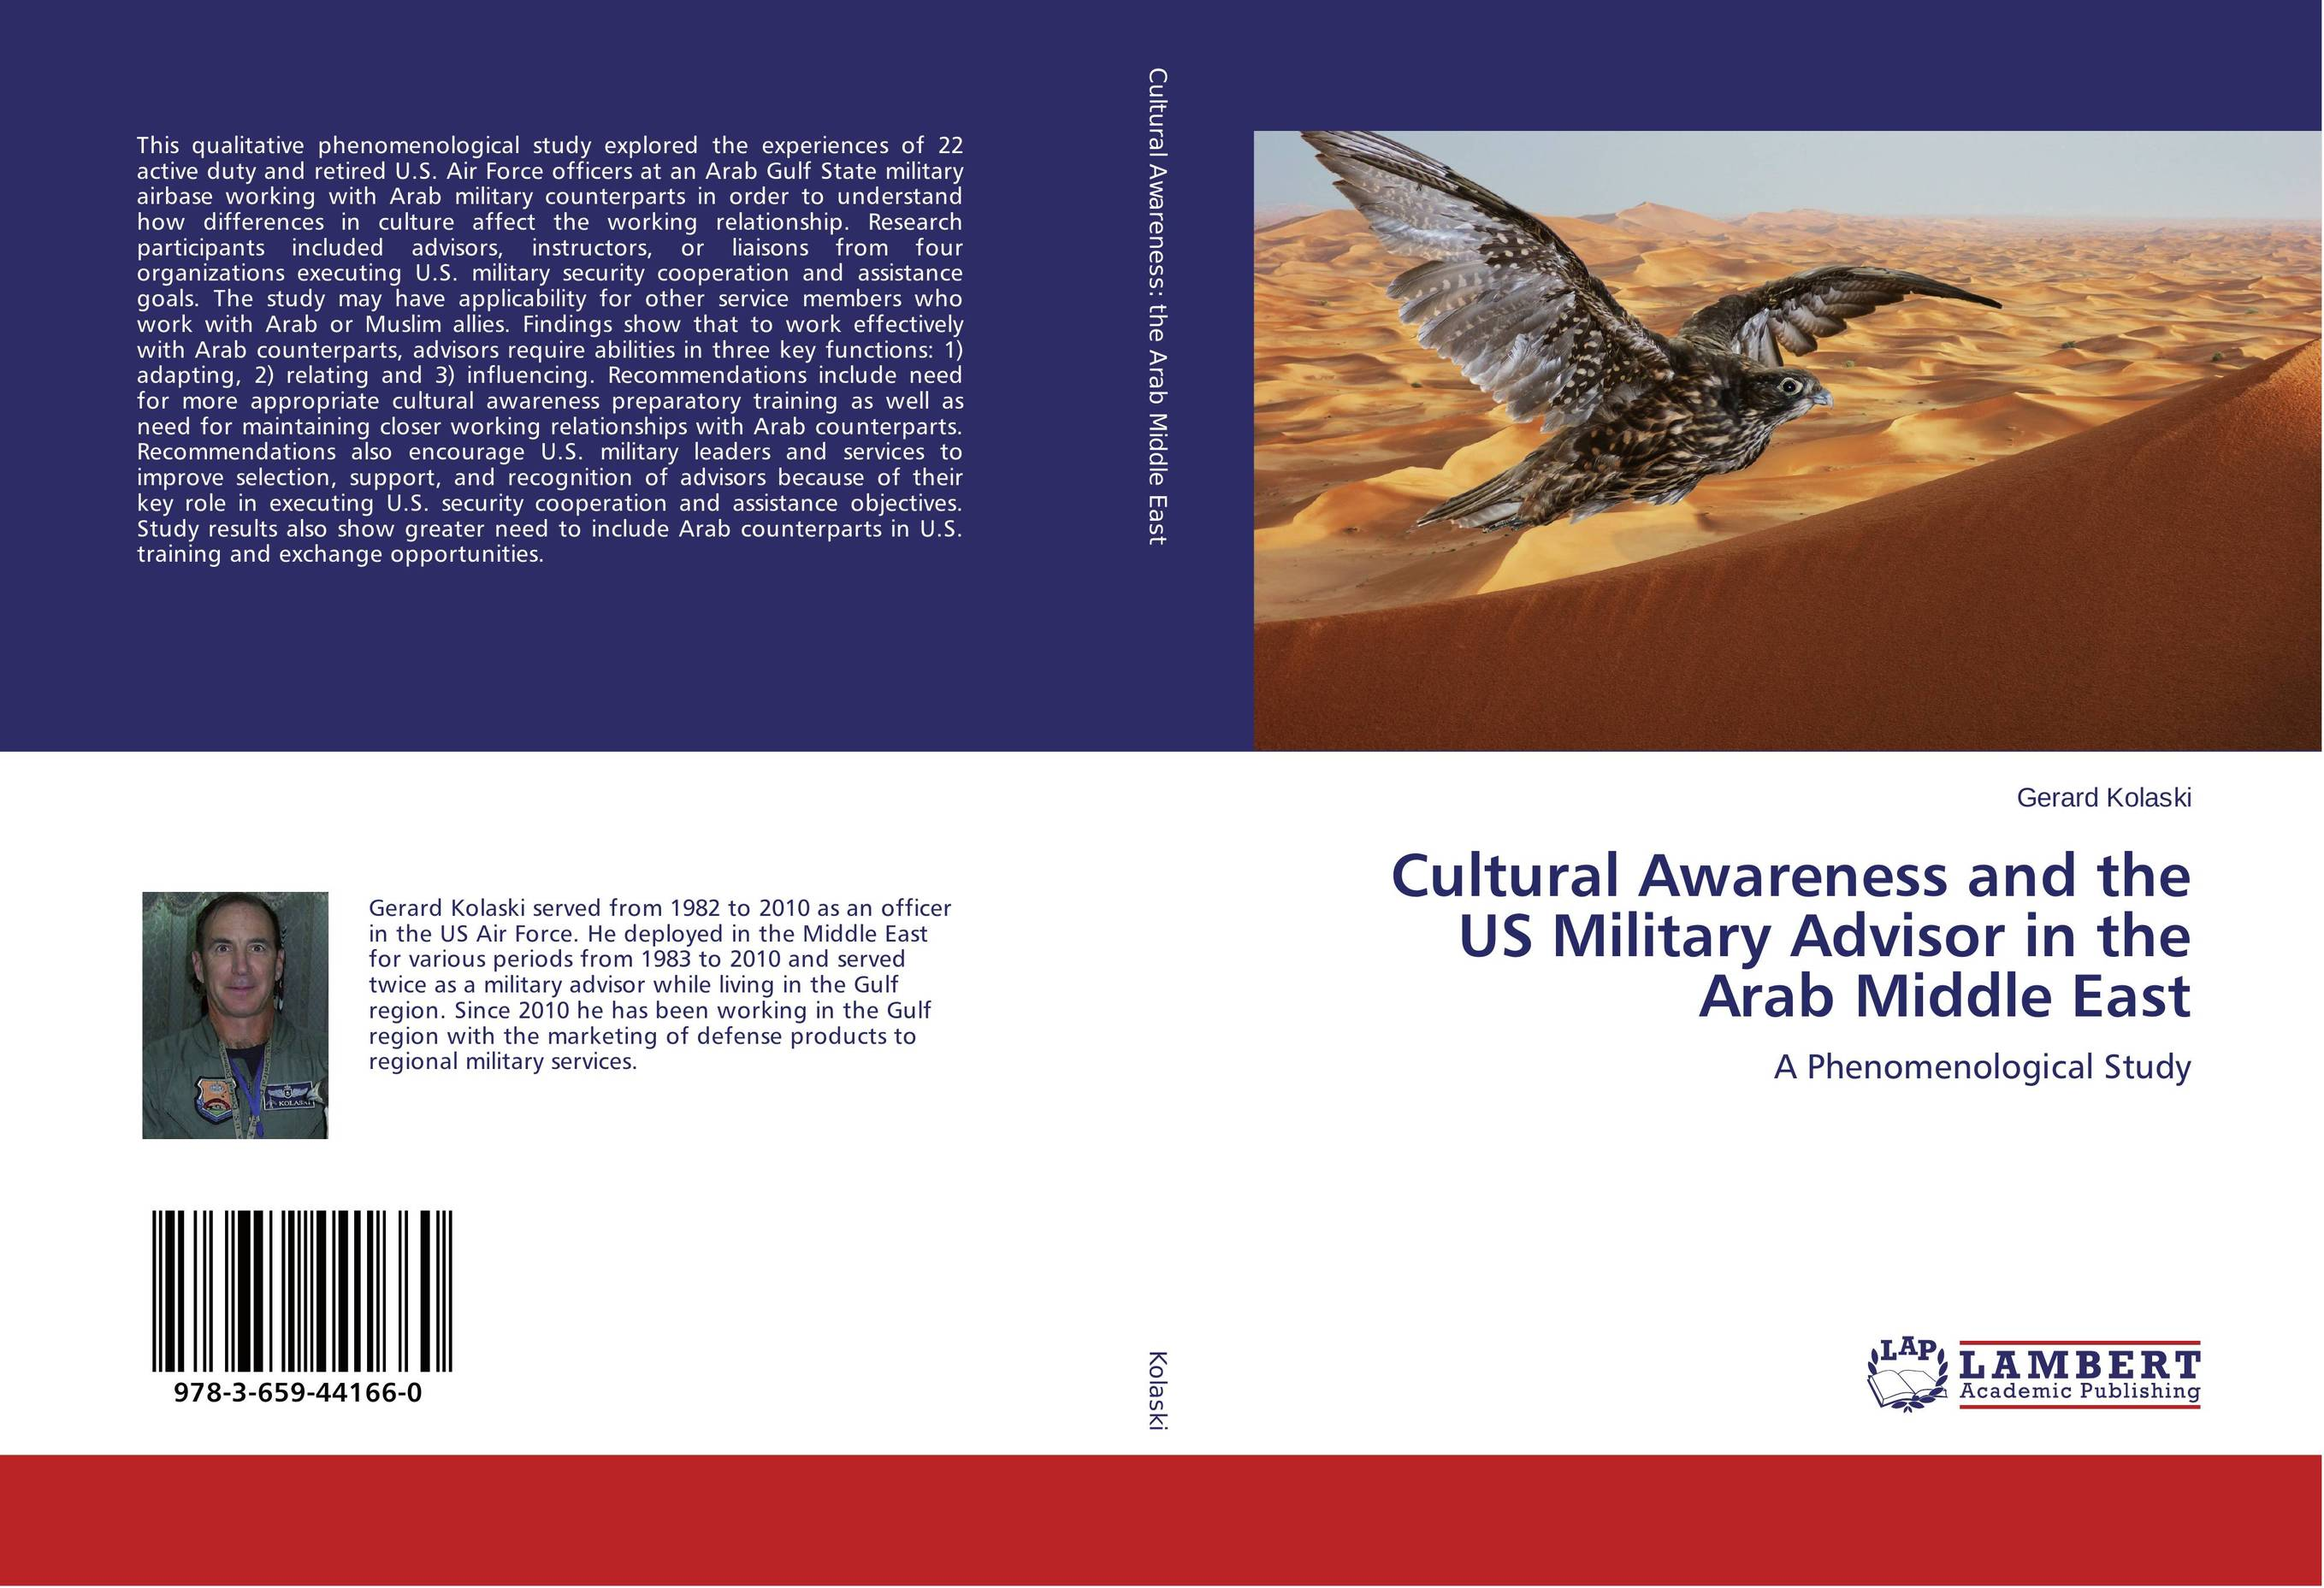 Cultural Awareness and the US Military Advisor in the Arab Middle East promoting social change in the arab gulf